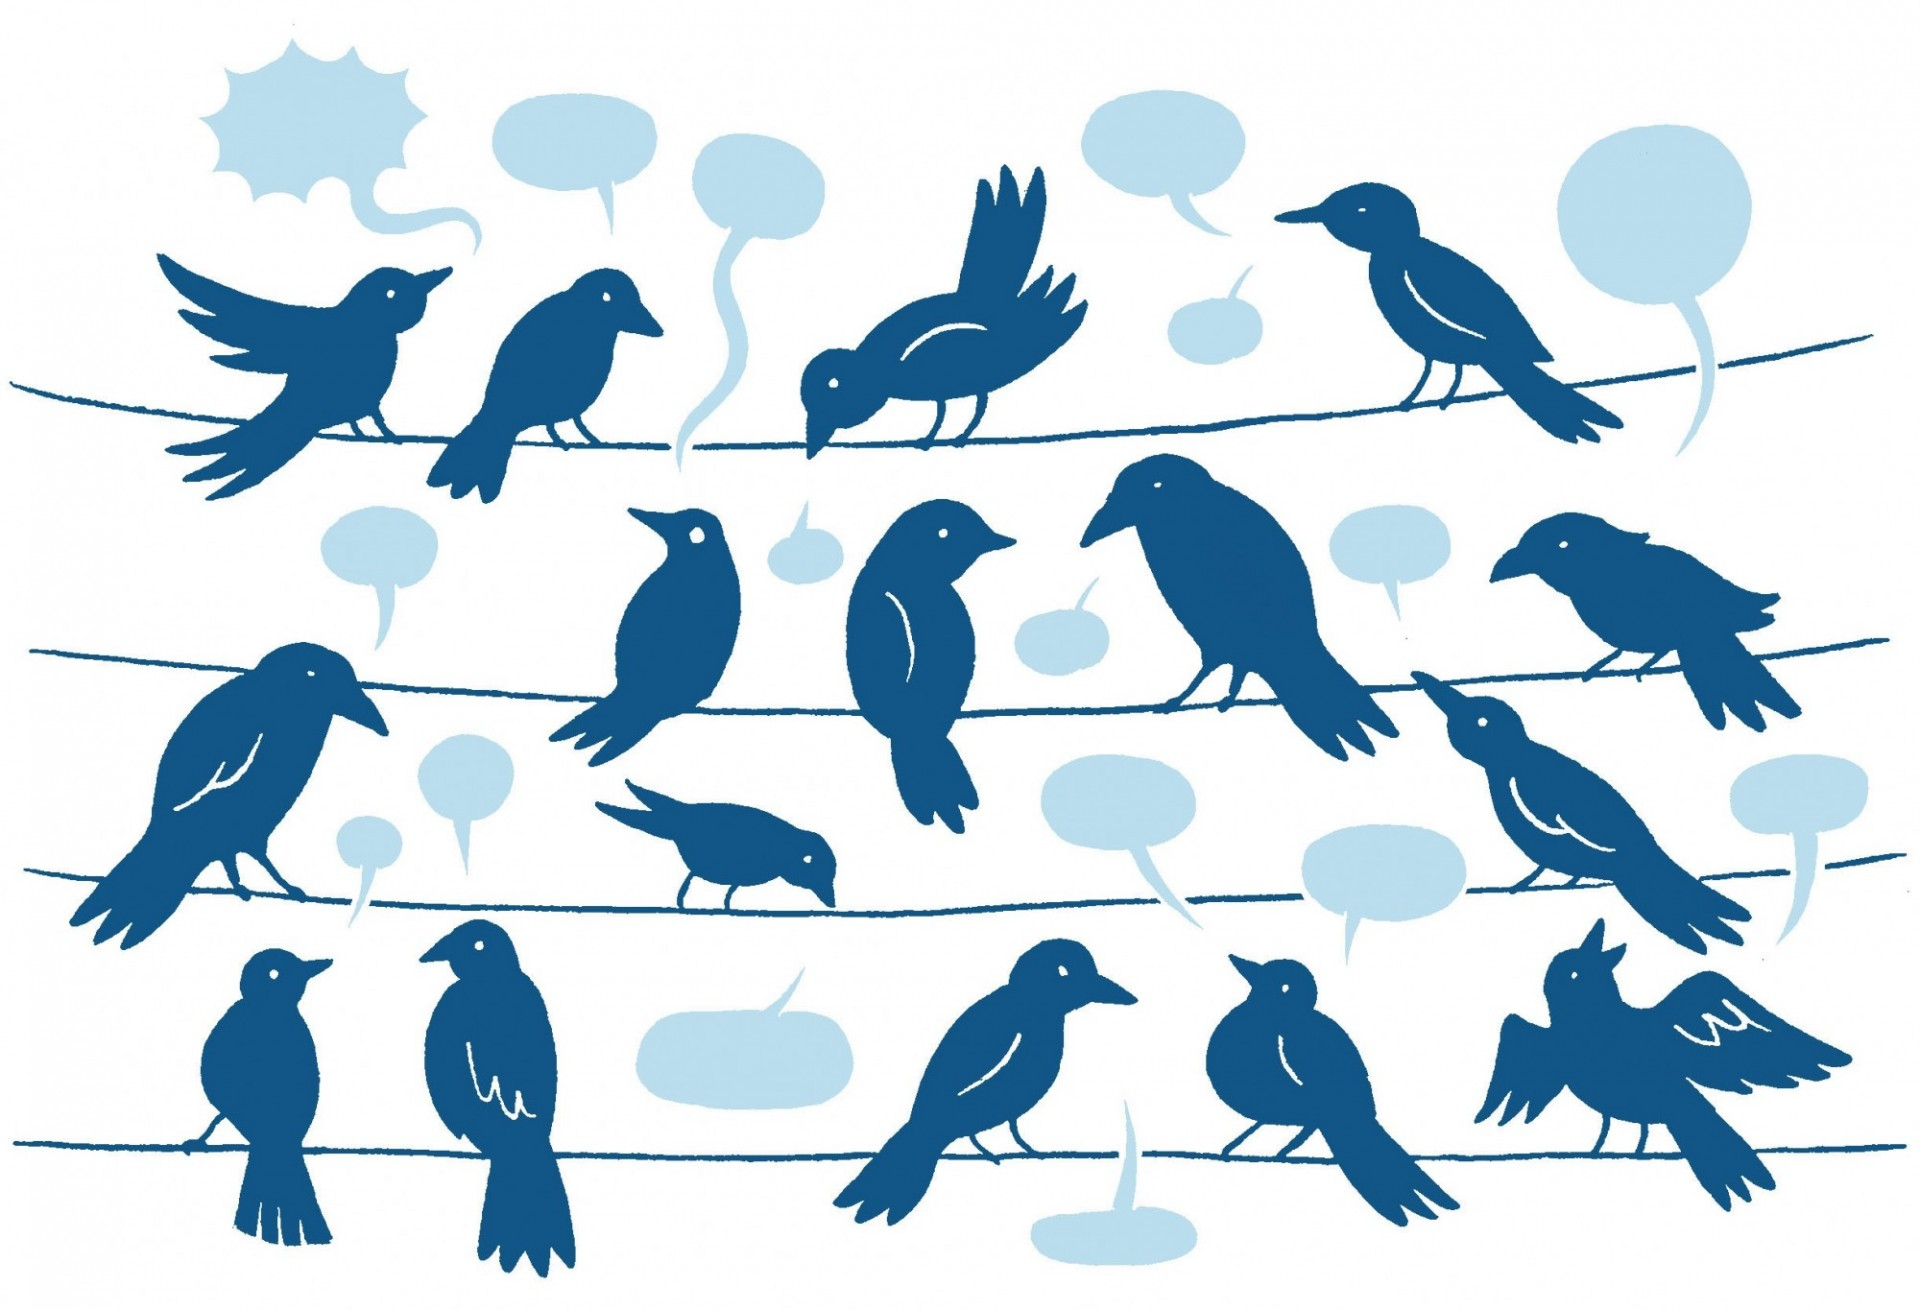 image of birds on a telephone line